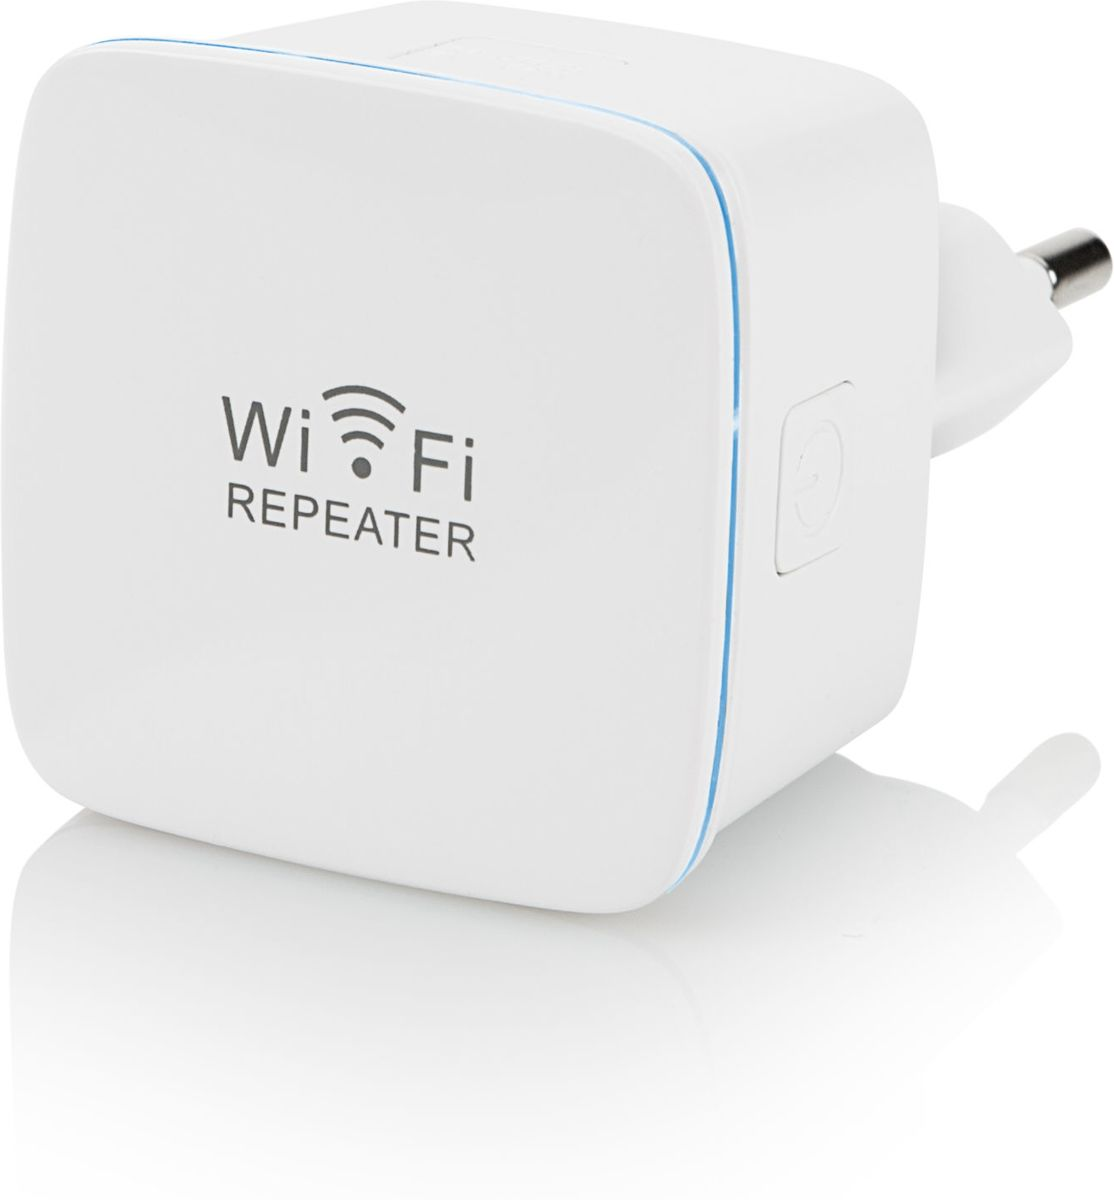 REP240 Wifi repeater - 300Mbit/s - Accespoint & Client - wit